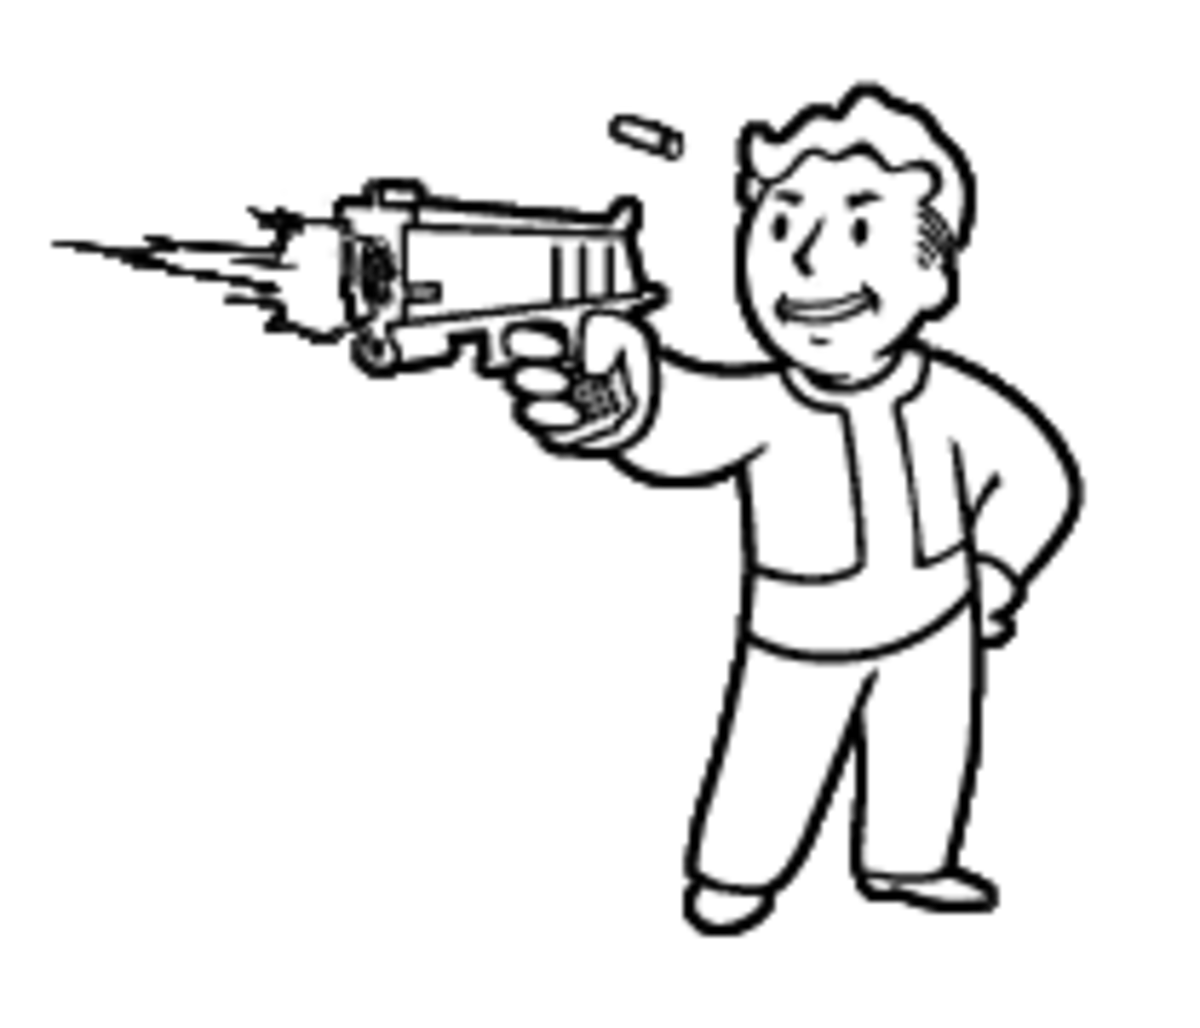 Fallout D&D WIP: Guns-How do they work?. Well its been a while. I posted here a long time ago asking for people's opinions on a Robot race for a custom Fallout